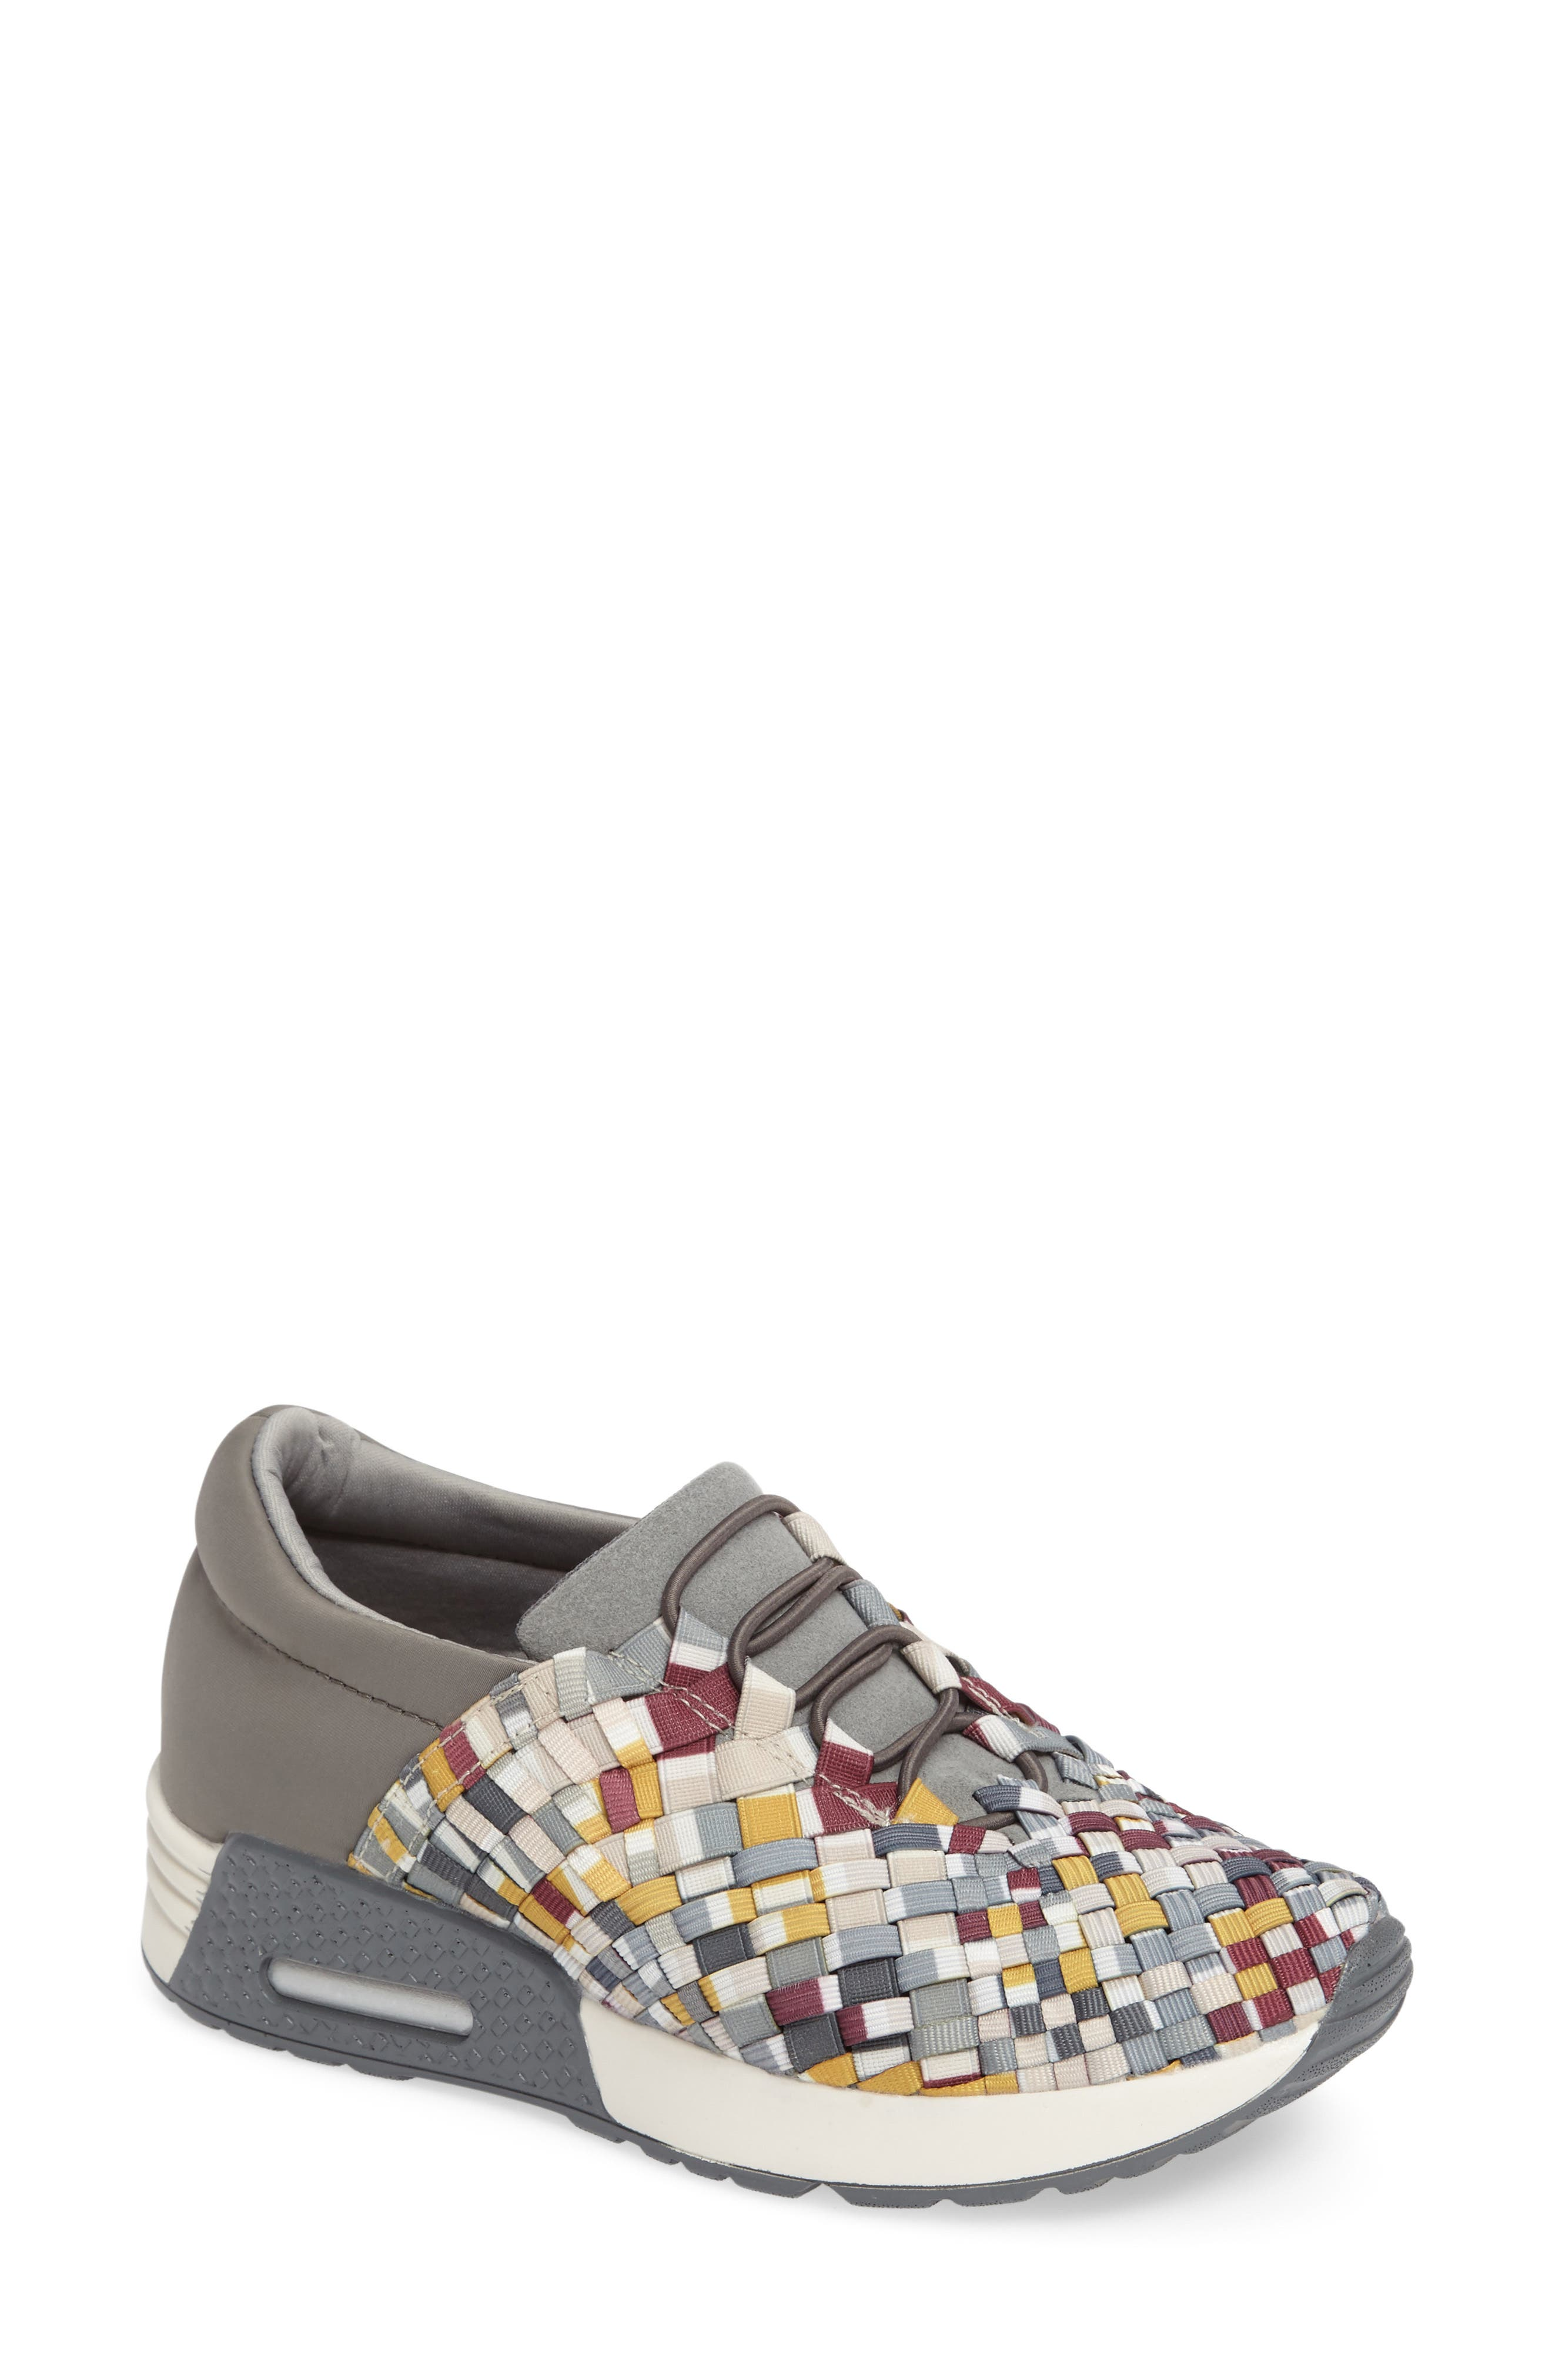 Best Tori Woven Sneaker,                             Main thumbnail 1, color,                             085